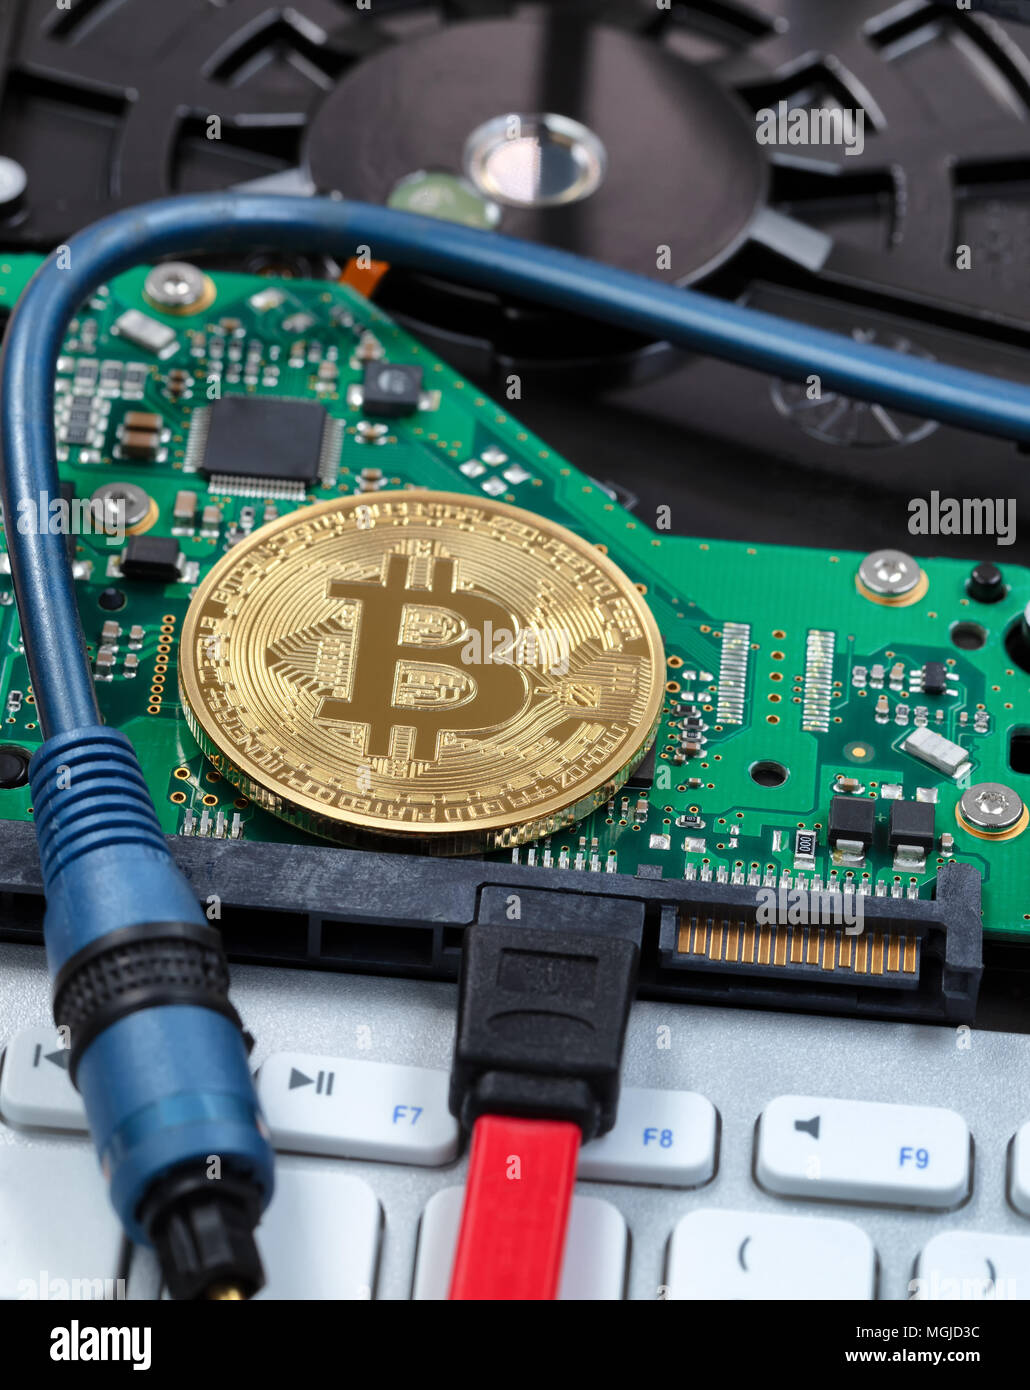 Close up view of cyber currency with modern computer technology - Stock Image